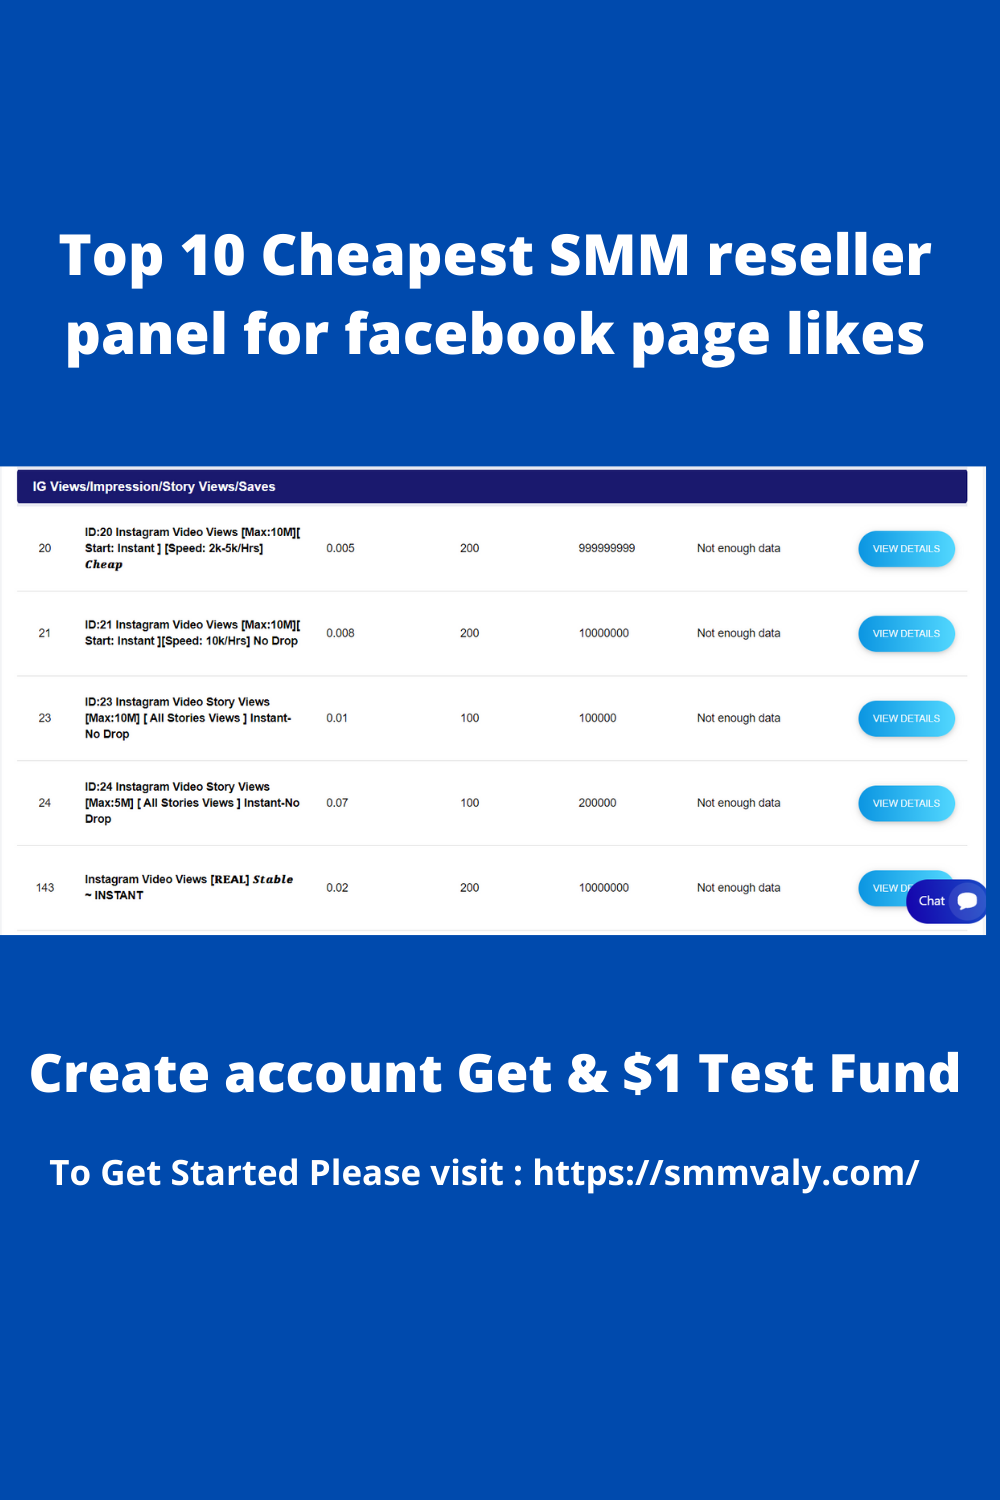 Top 10 Cheapest SMM reseller panel for Facebook page likes